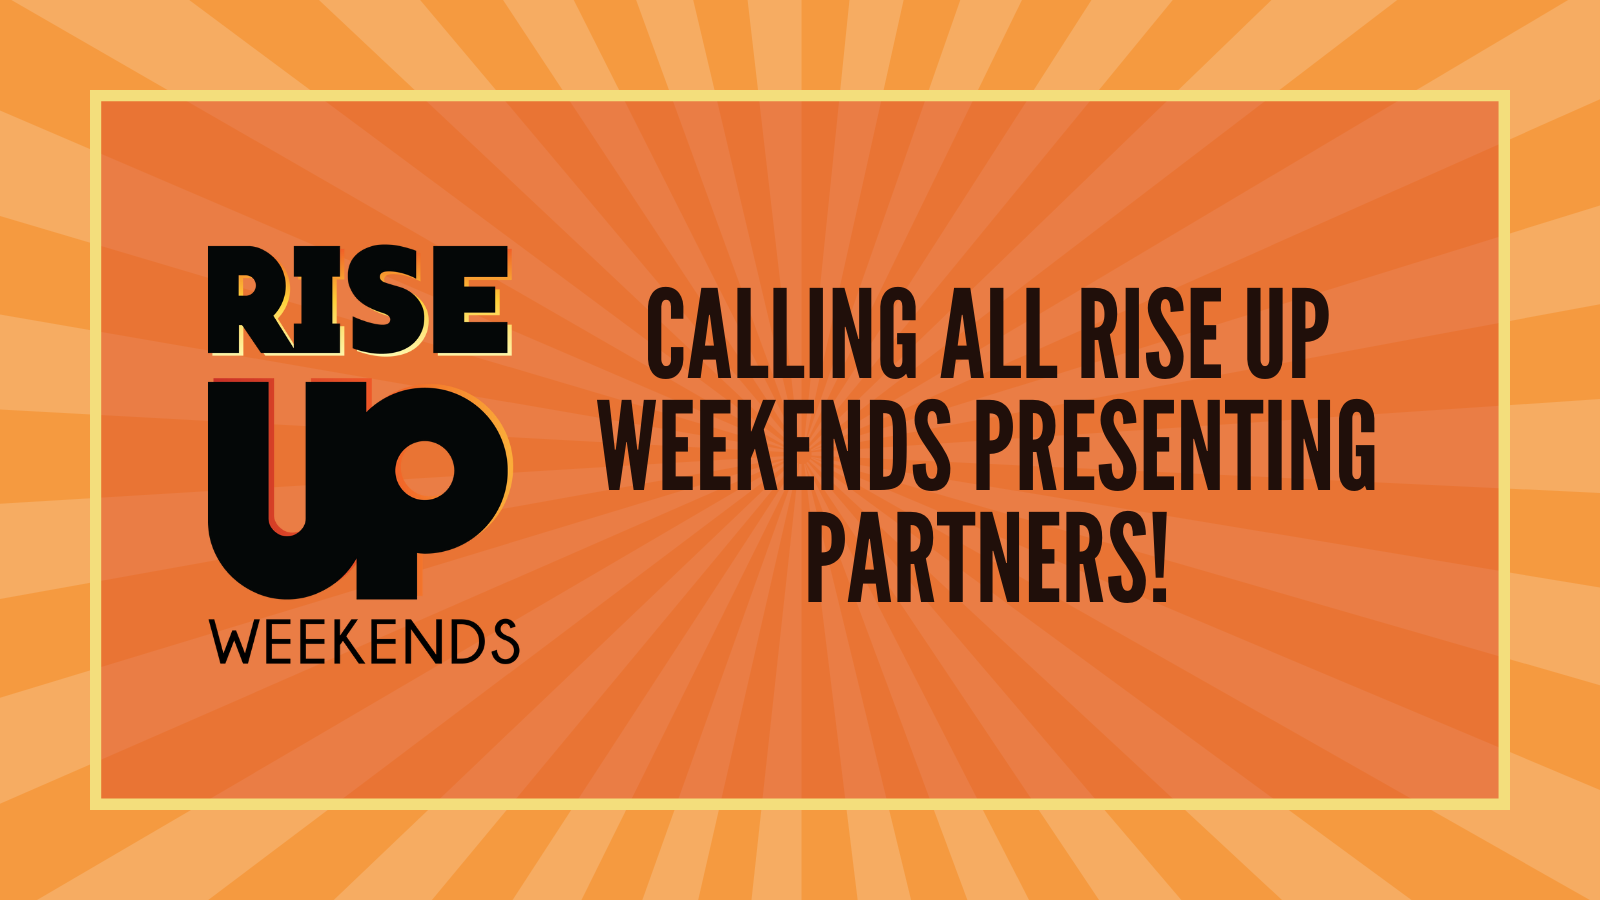 RISE UP Weekends graphic. Calling all RISE UP Weekends presenting partners!